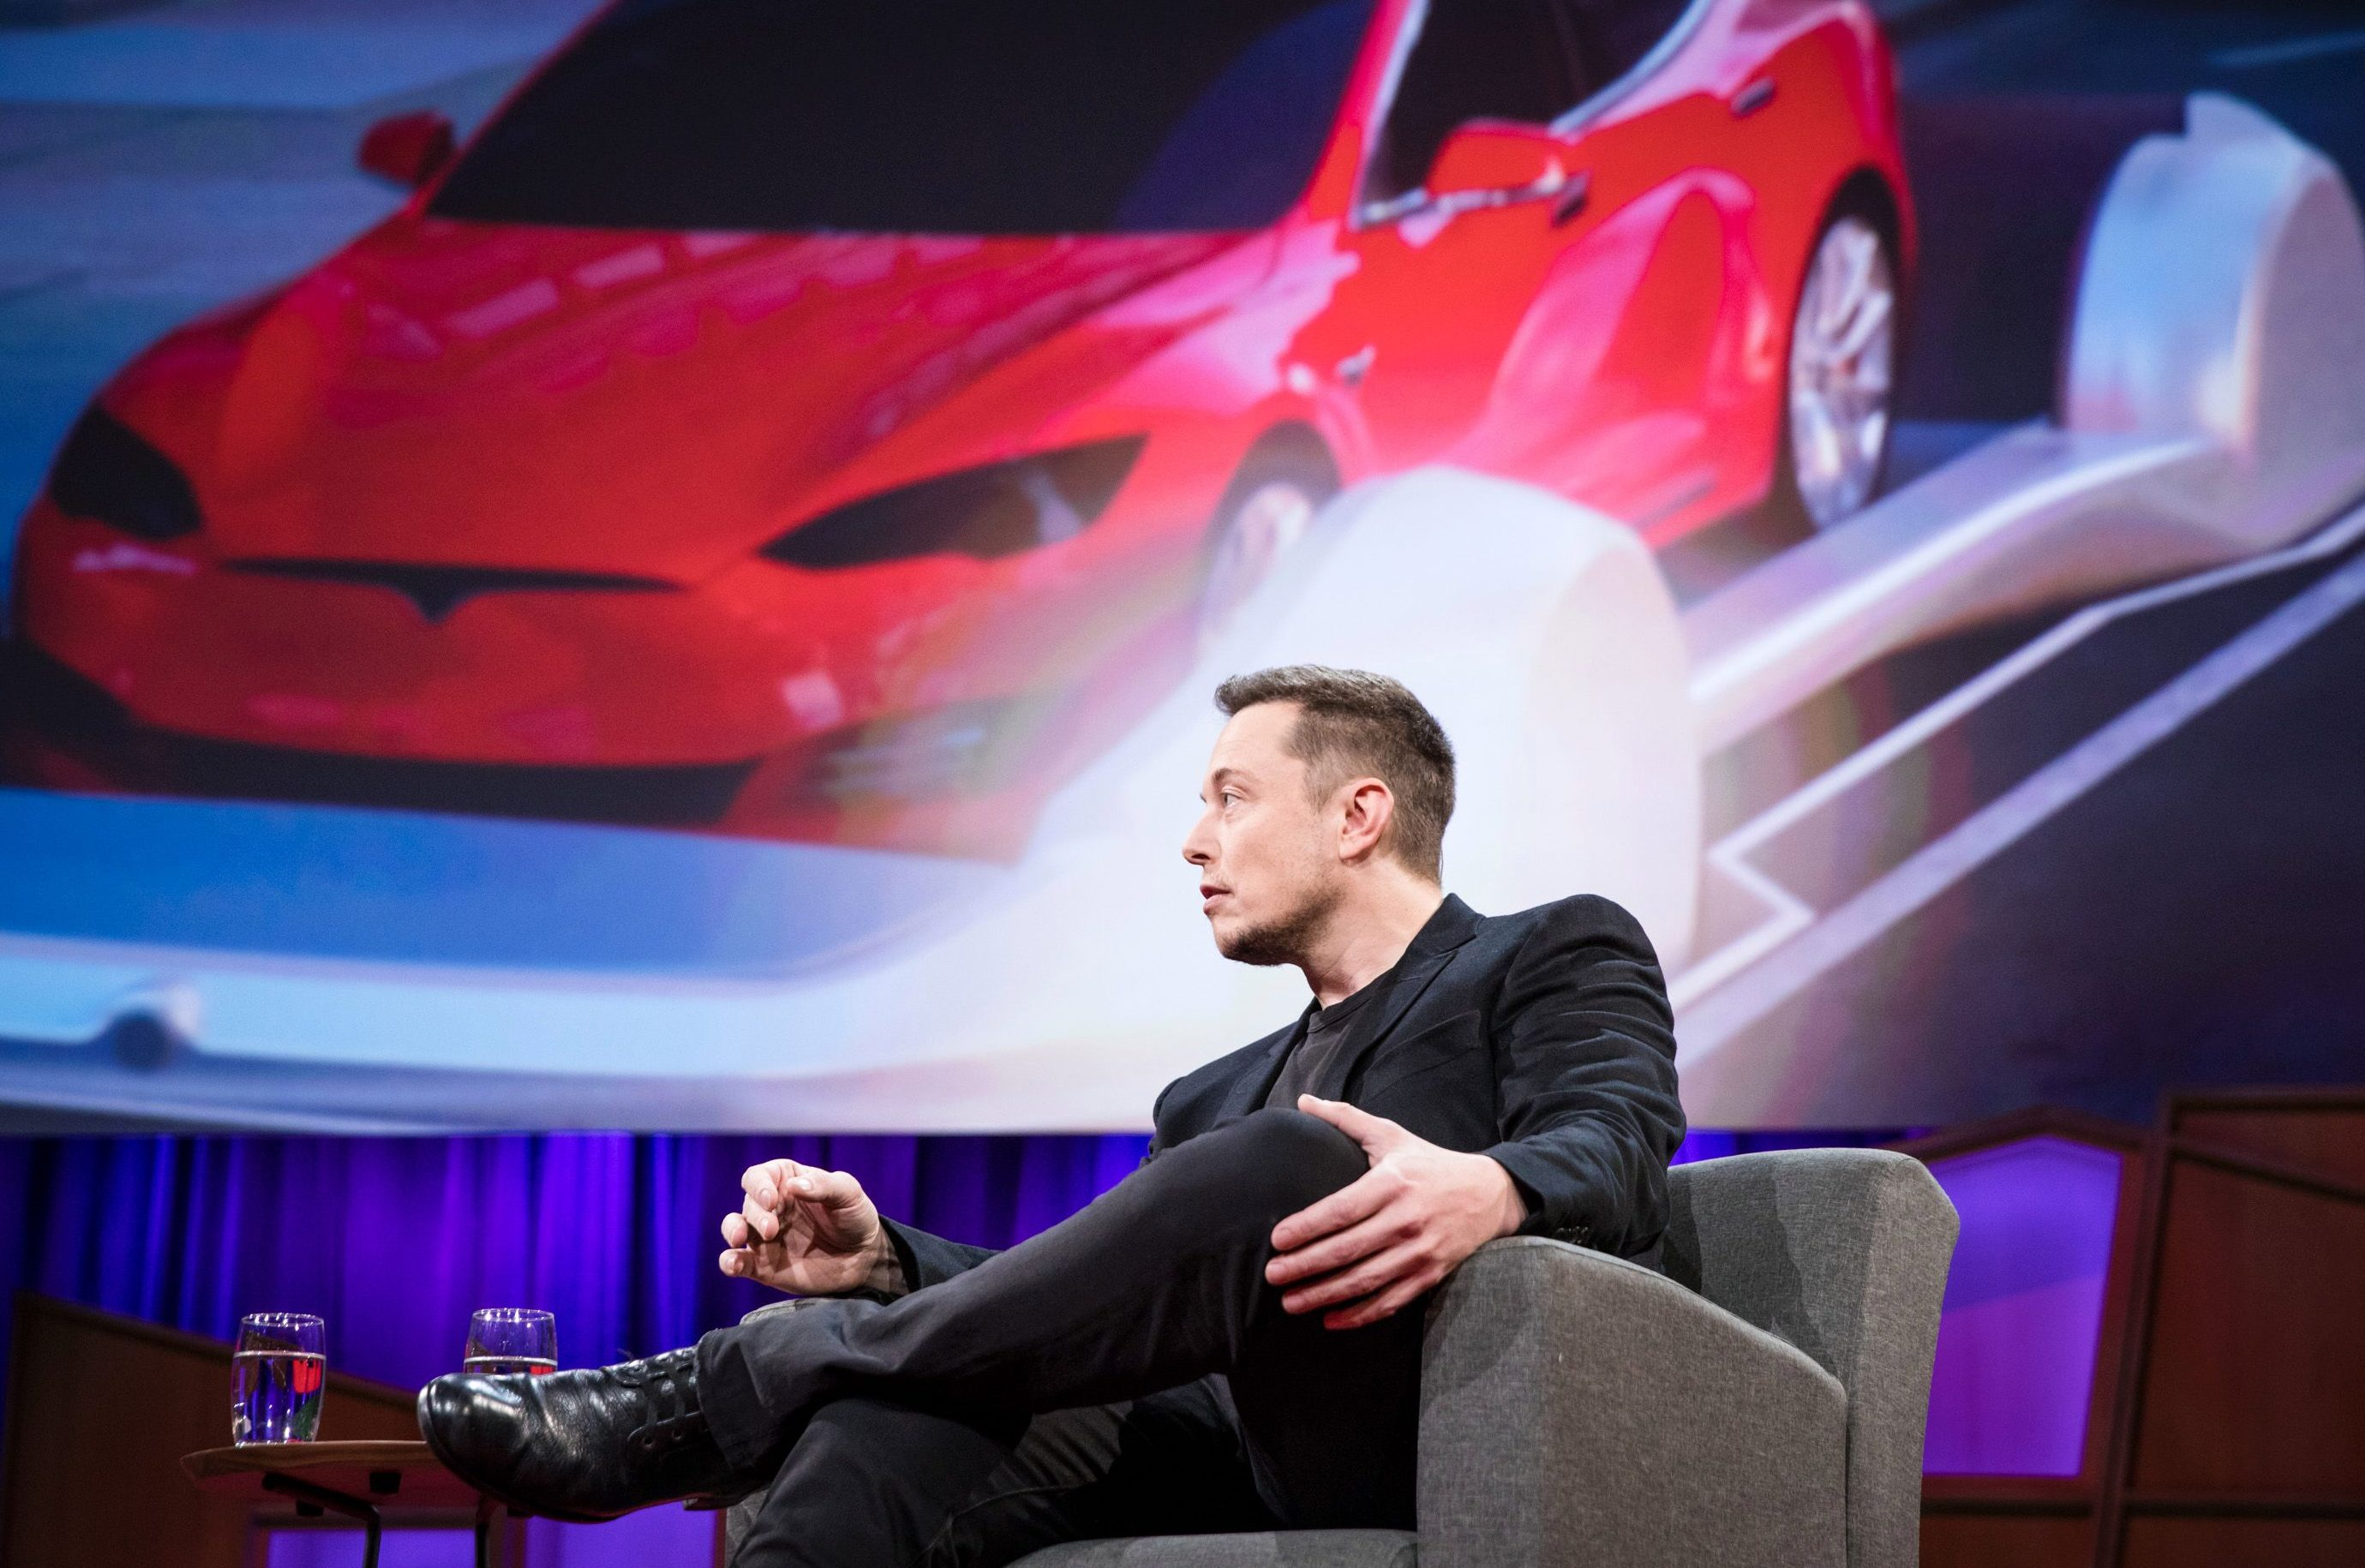 Chris Anderson interviews Elon Musk at TED2017 - The Future You, April 24-28, 2017, Vancouver, BC, Canada. Photo: Bret Hartman / TED